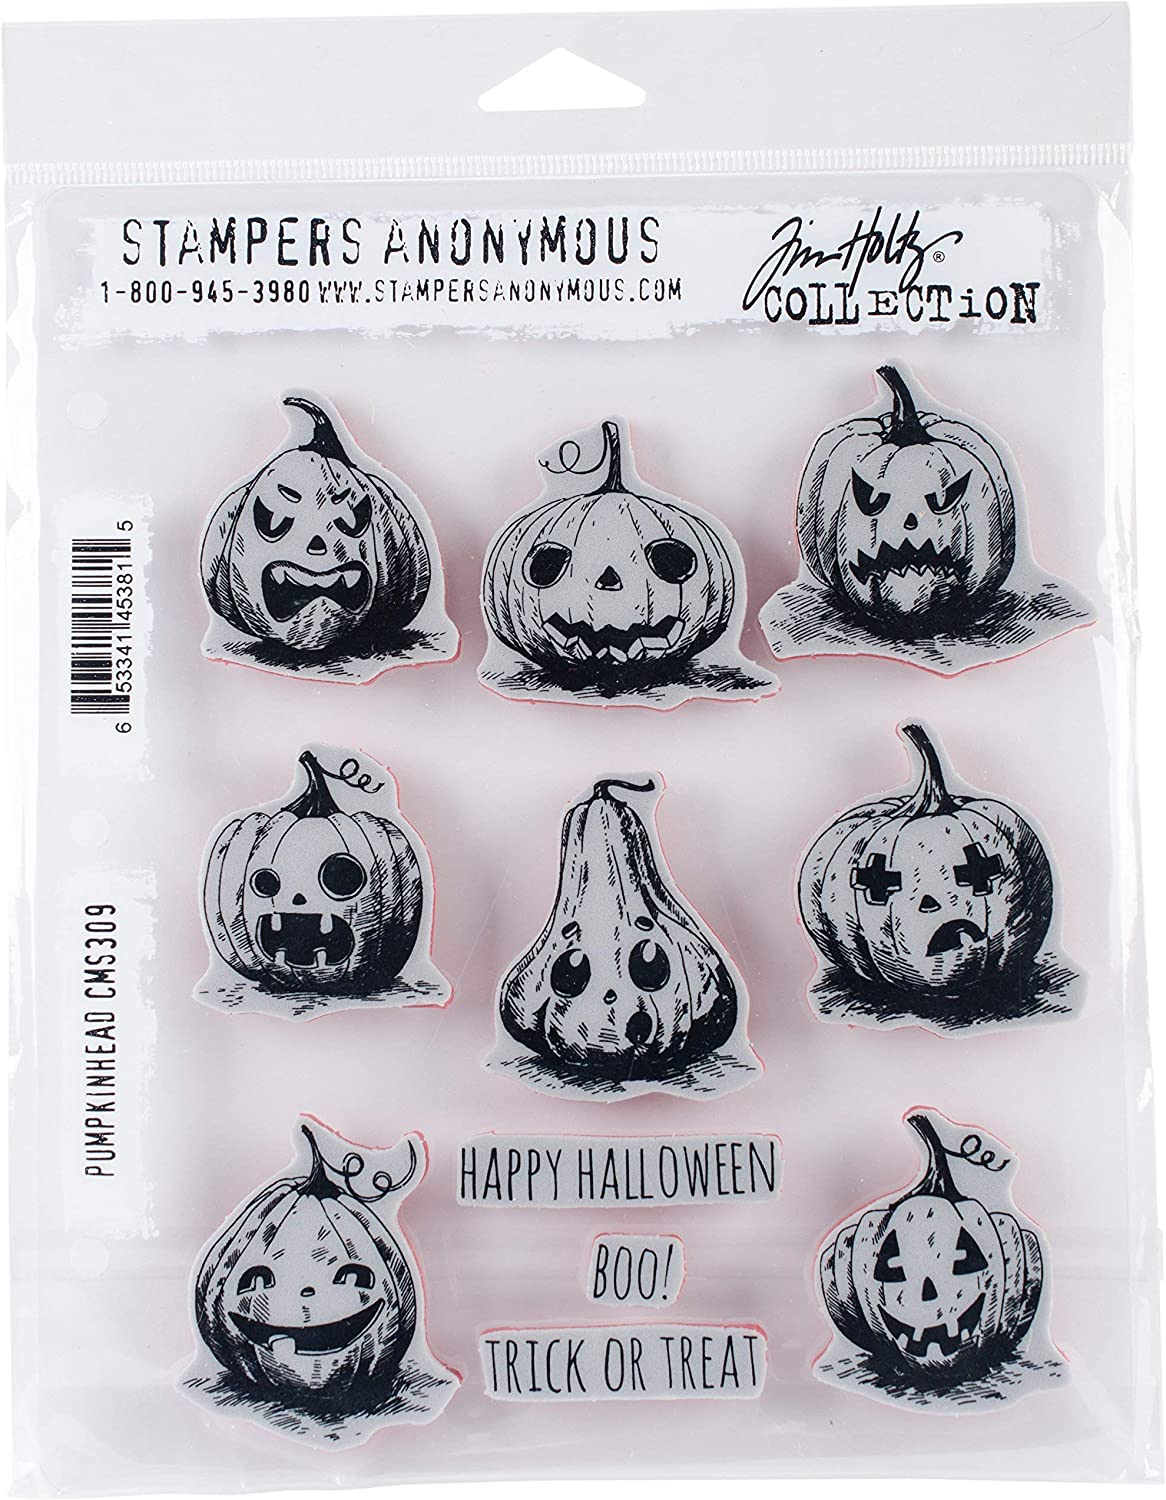 Stampers Anonymous Monstrous Cling Rubber Stamp Set 24.8 x 18.6 x 0.8 cm Multi-Colour Synthetic Material